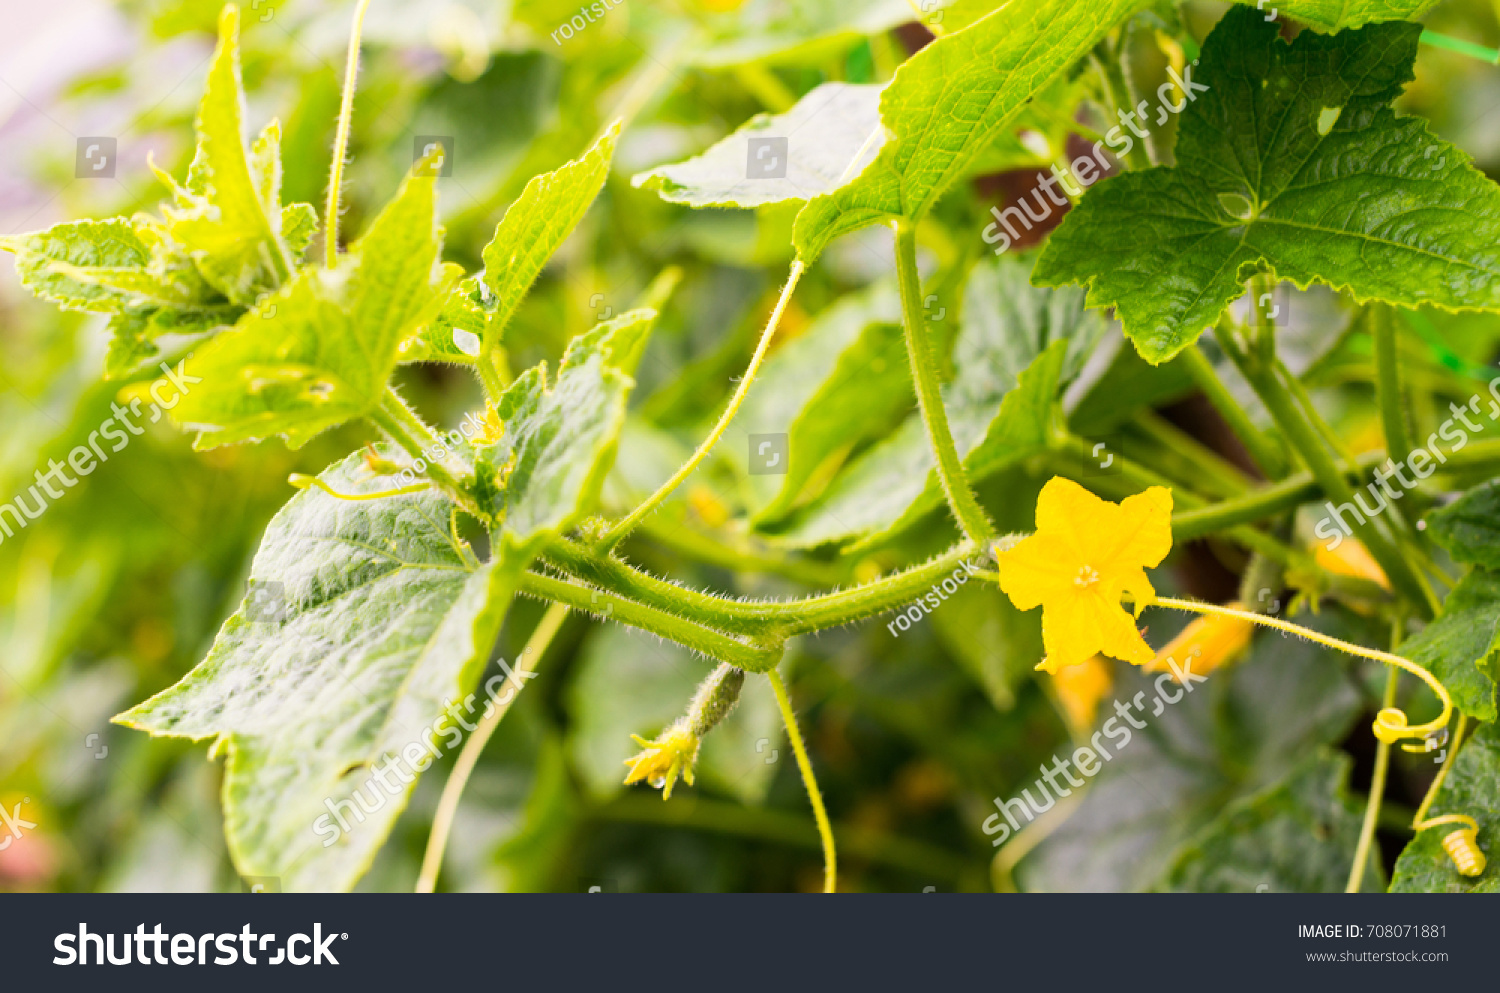 Cucumber yellow flowers creeping vines green stock photo edit now cucumber yellow flowers creeping vines and green leaves mightylinksfo